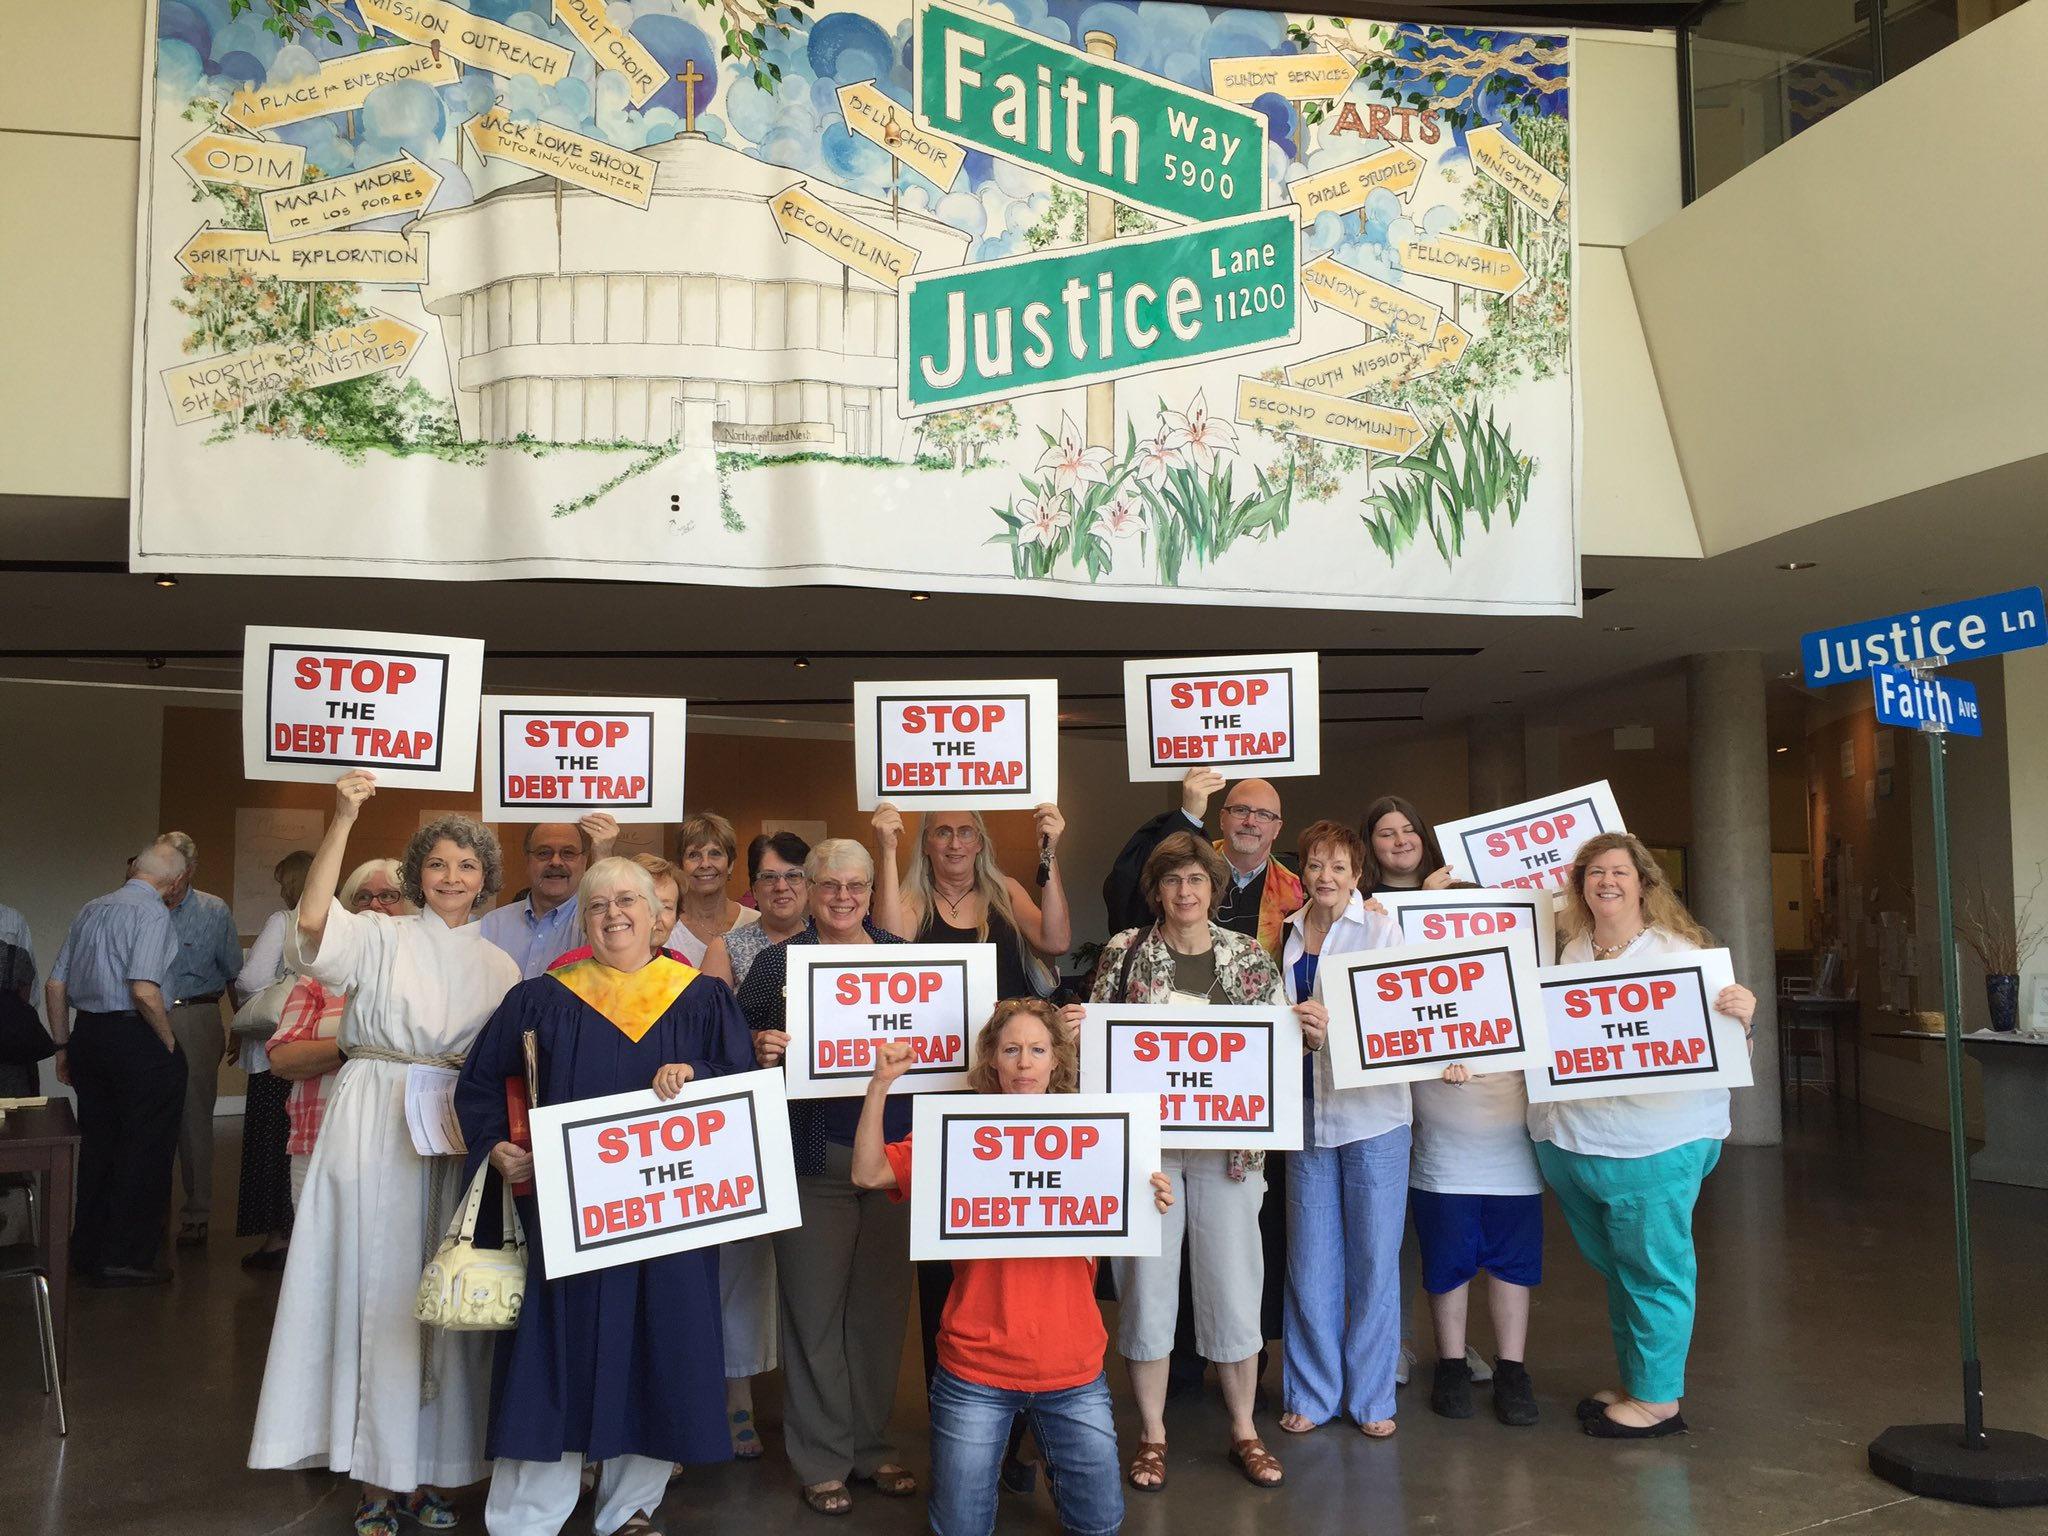 #FaithInTexas #StopTheDebtTrap @CFPB https://t.co/6ppQETI64d